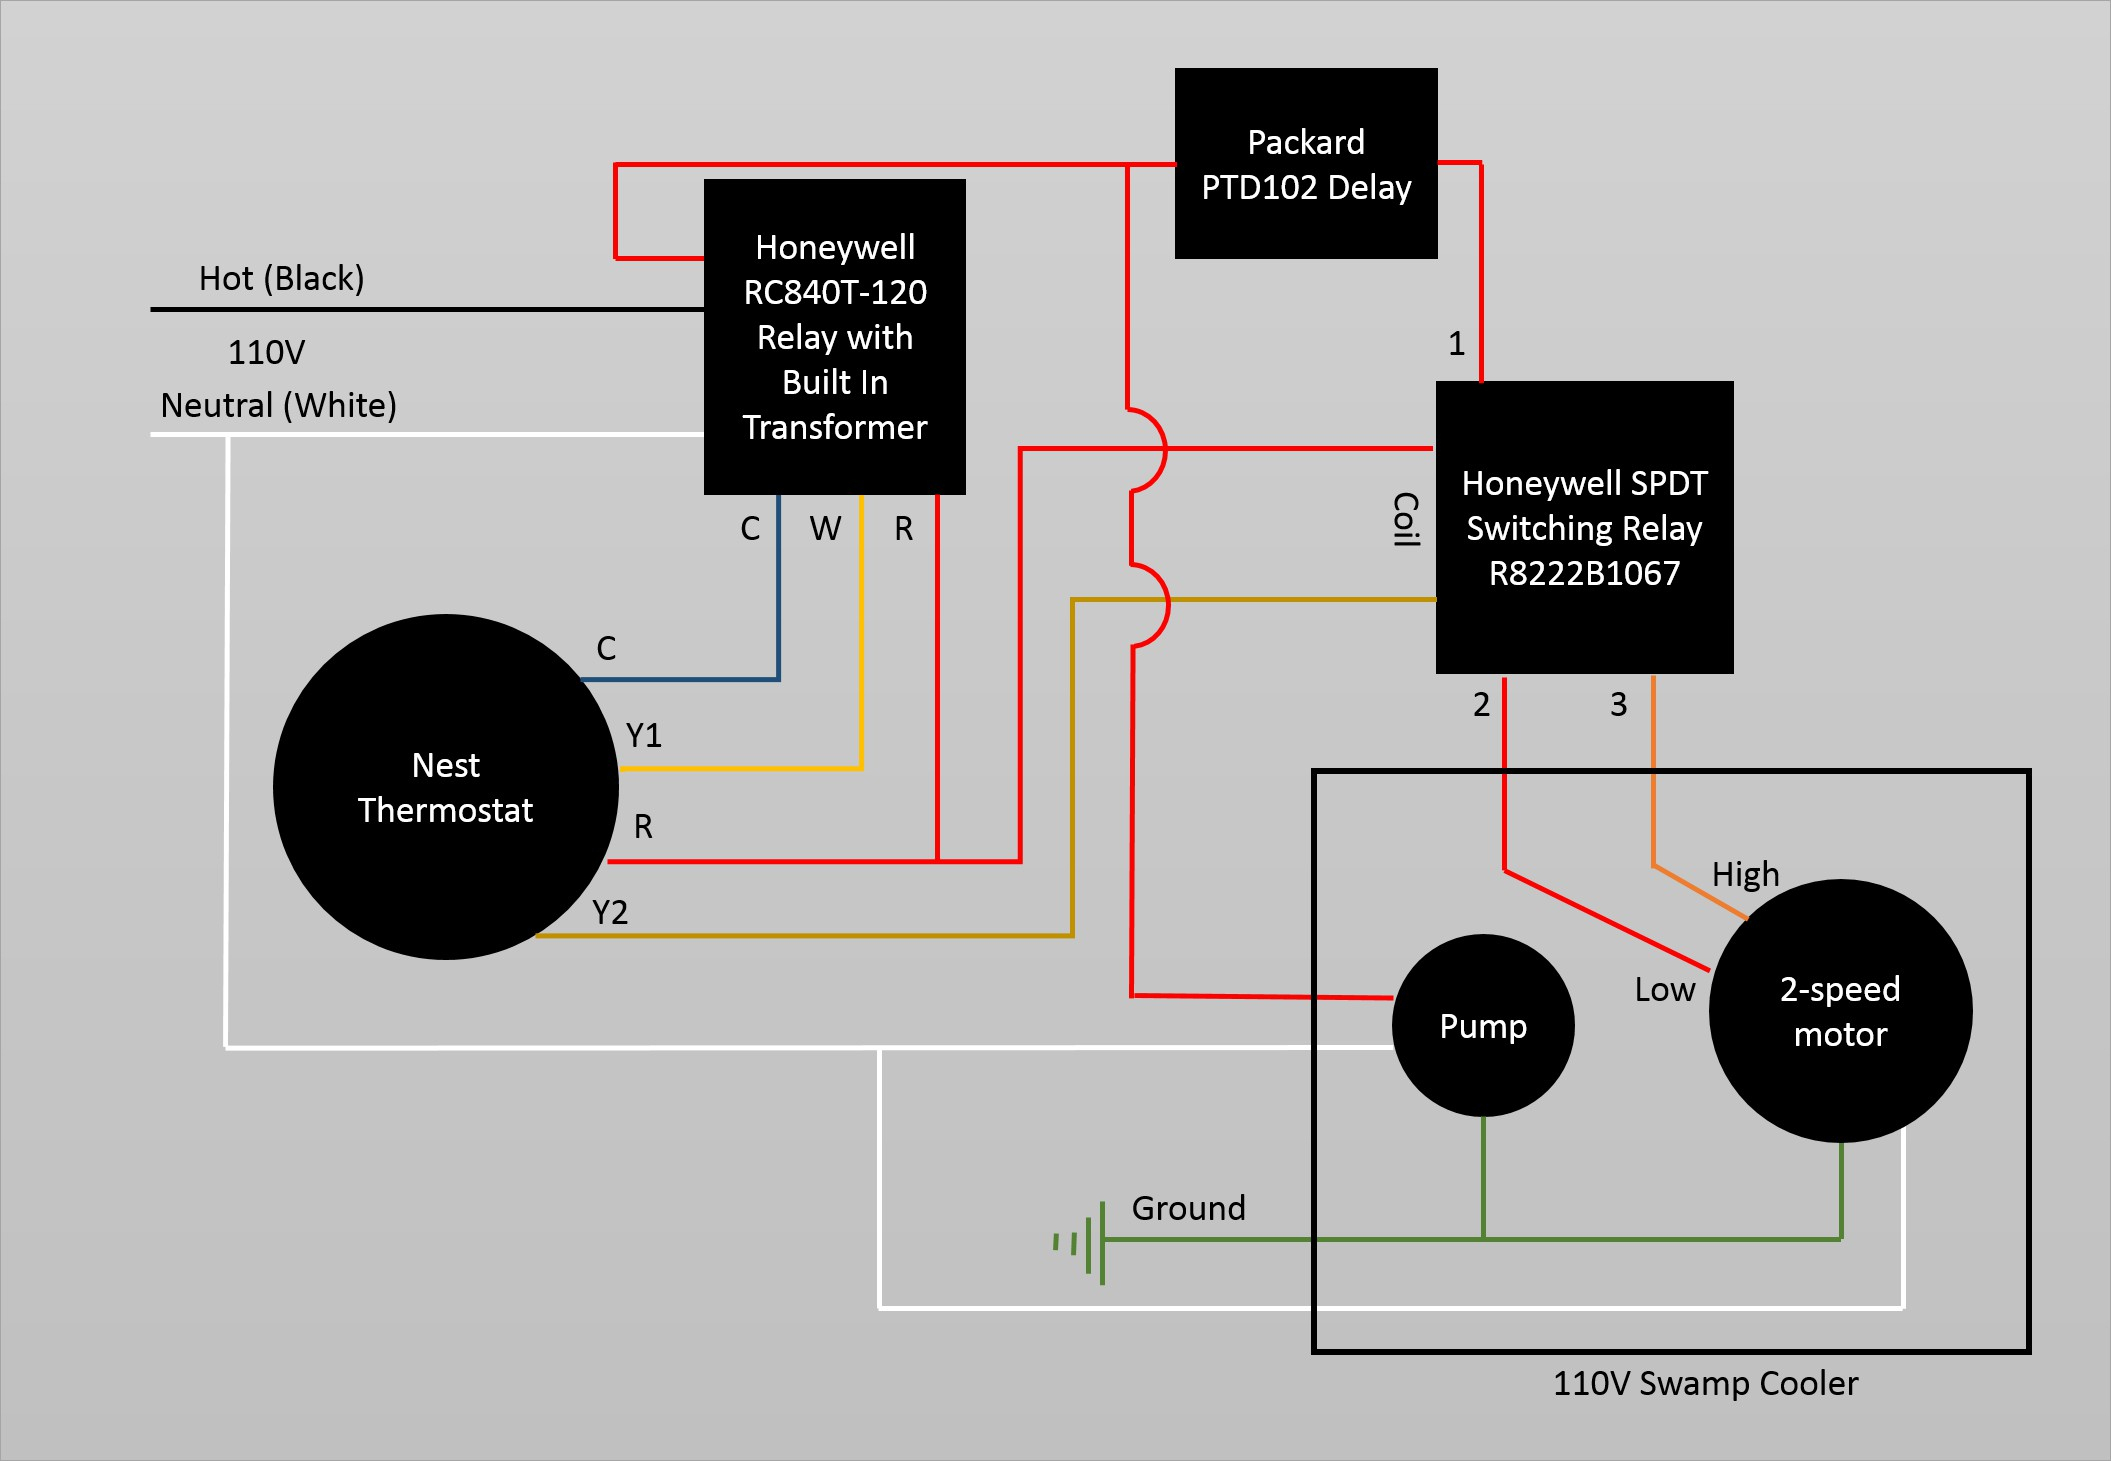 Honeywell Lyric Wiring Diagram Lovely Controlling Humidifier Swamp - Nest Wiring Diagram For Heat Pump Two Stage Heat One Stage Cooling